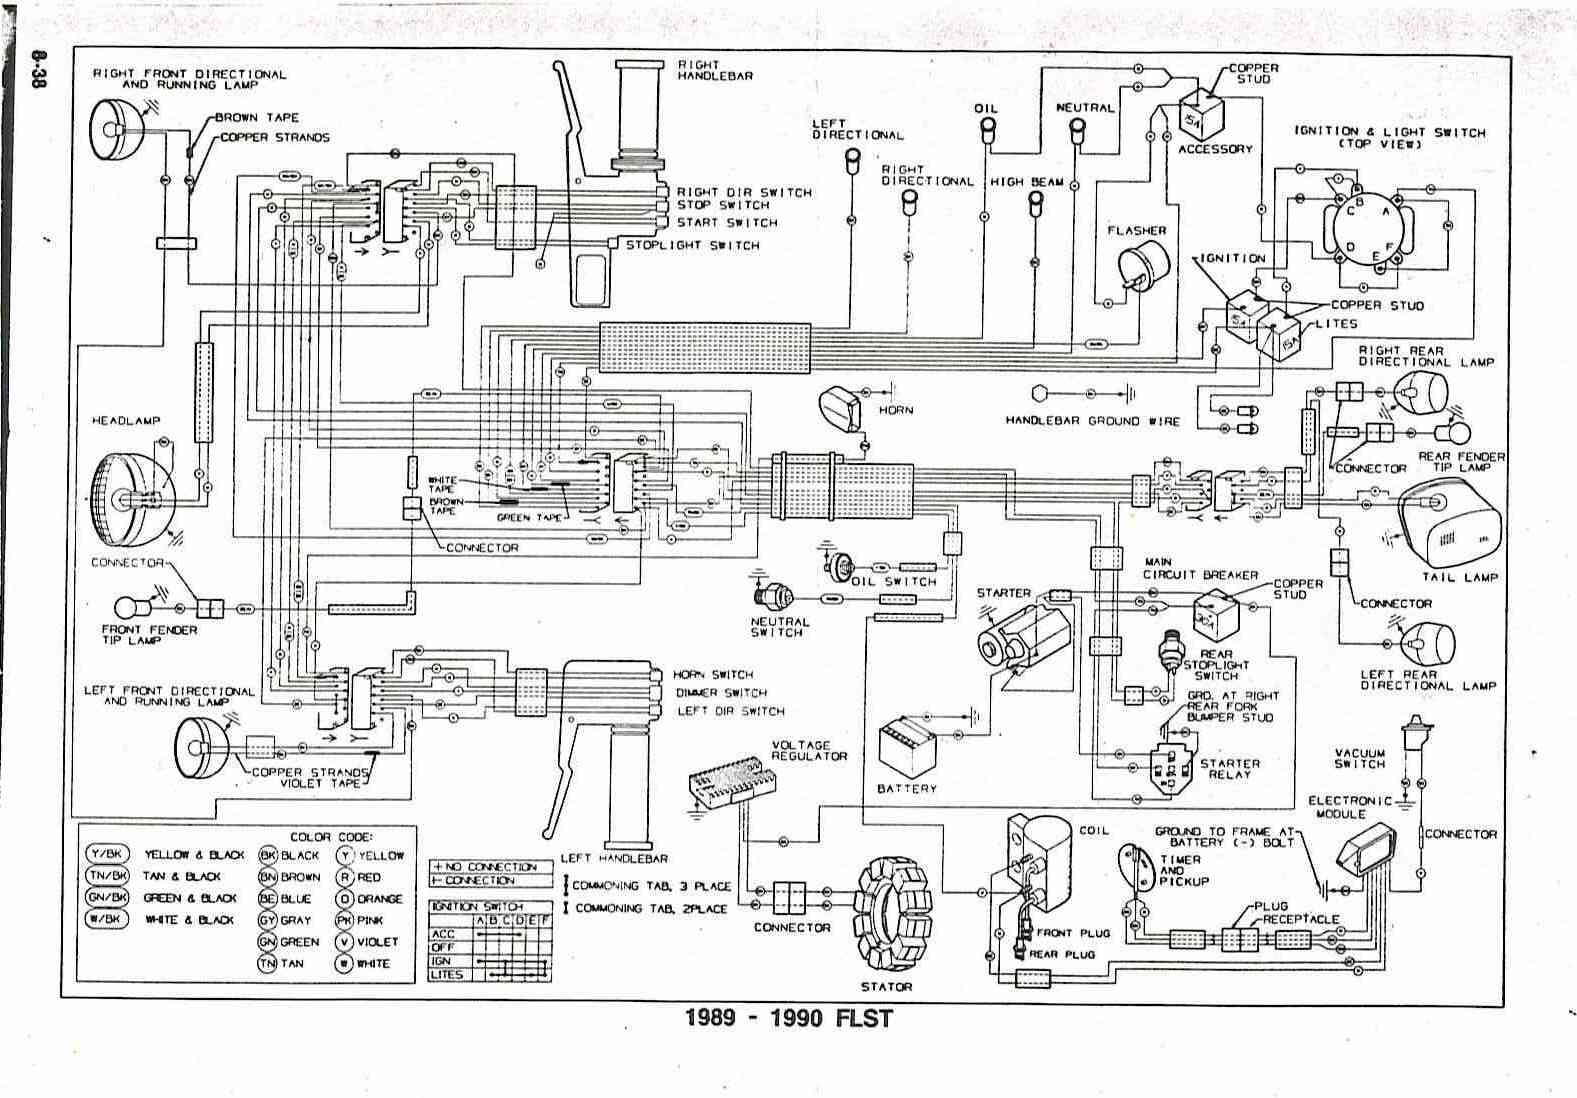 Wiring Diagrams For 2003 Fatboy Schematic Diagrams Harley-Davidson Wiring  Schematic Wiring Diagrams For 2003 Fatboy